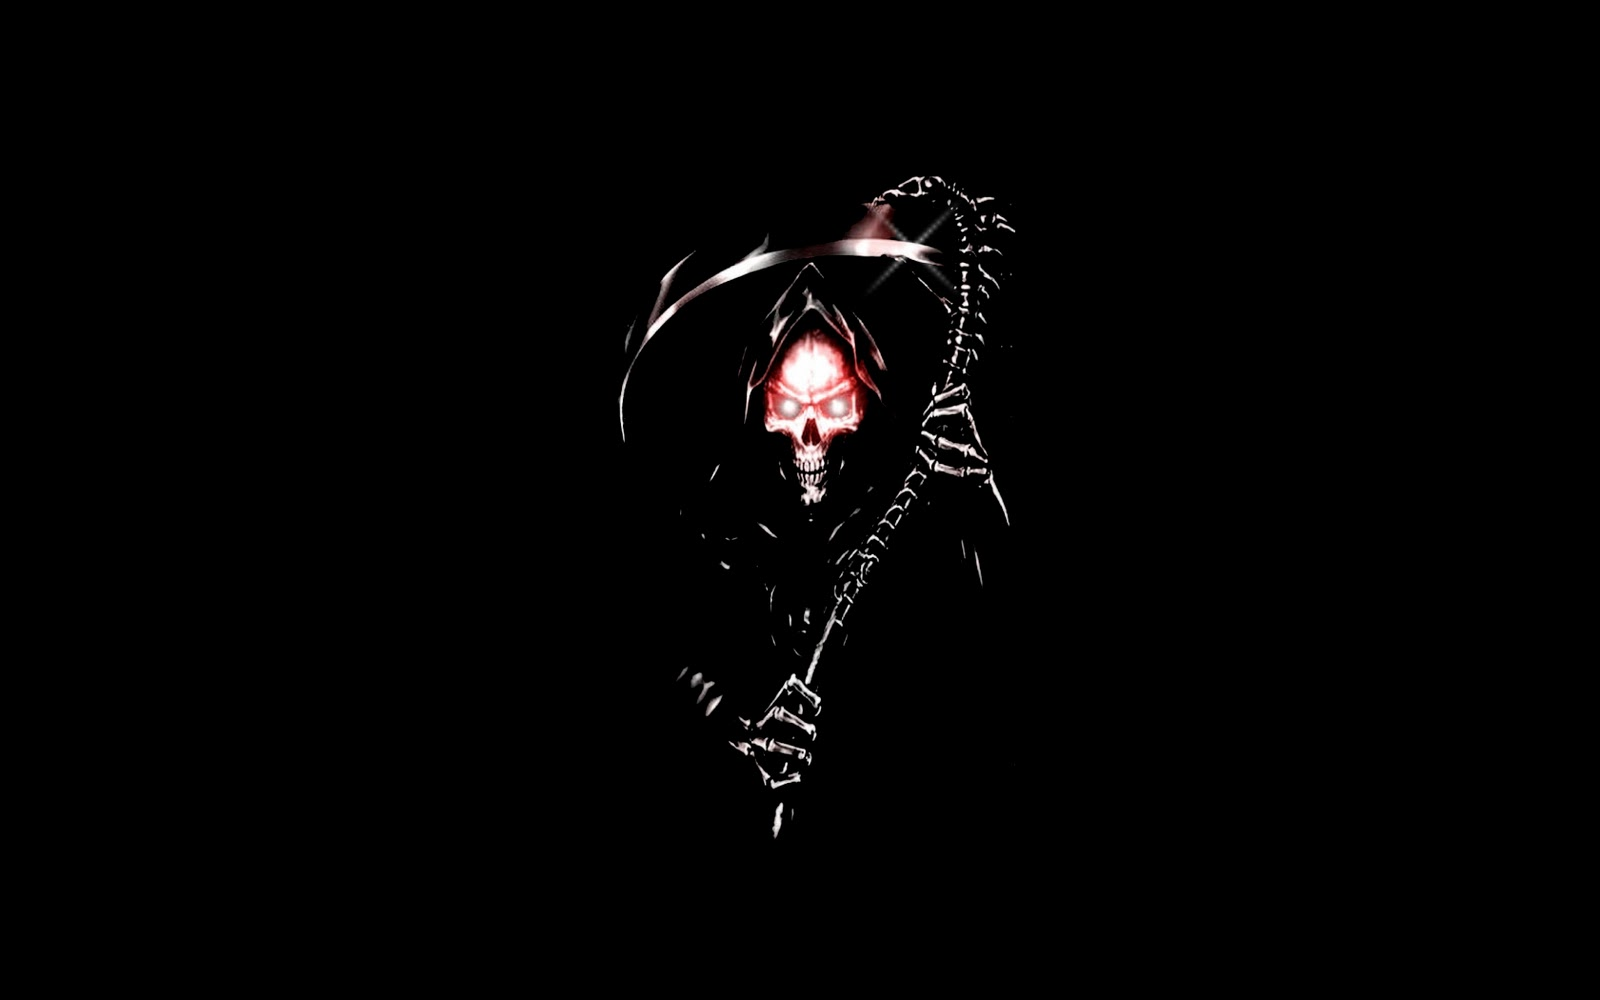 Grim Reaper HD Wallpapers HD Wallpapers Backgrounds Photos 1600x1000